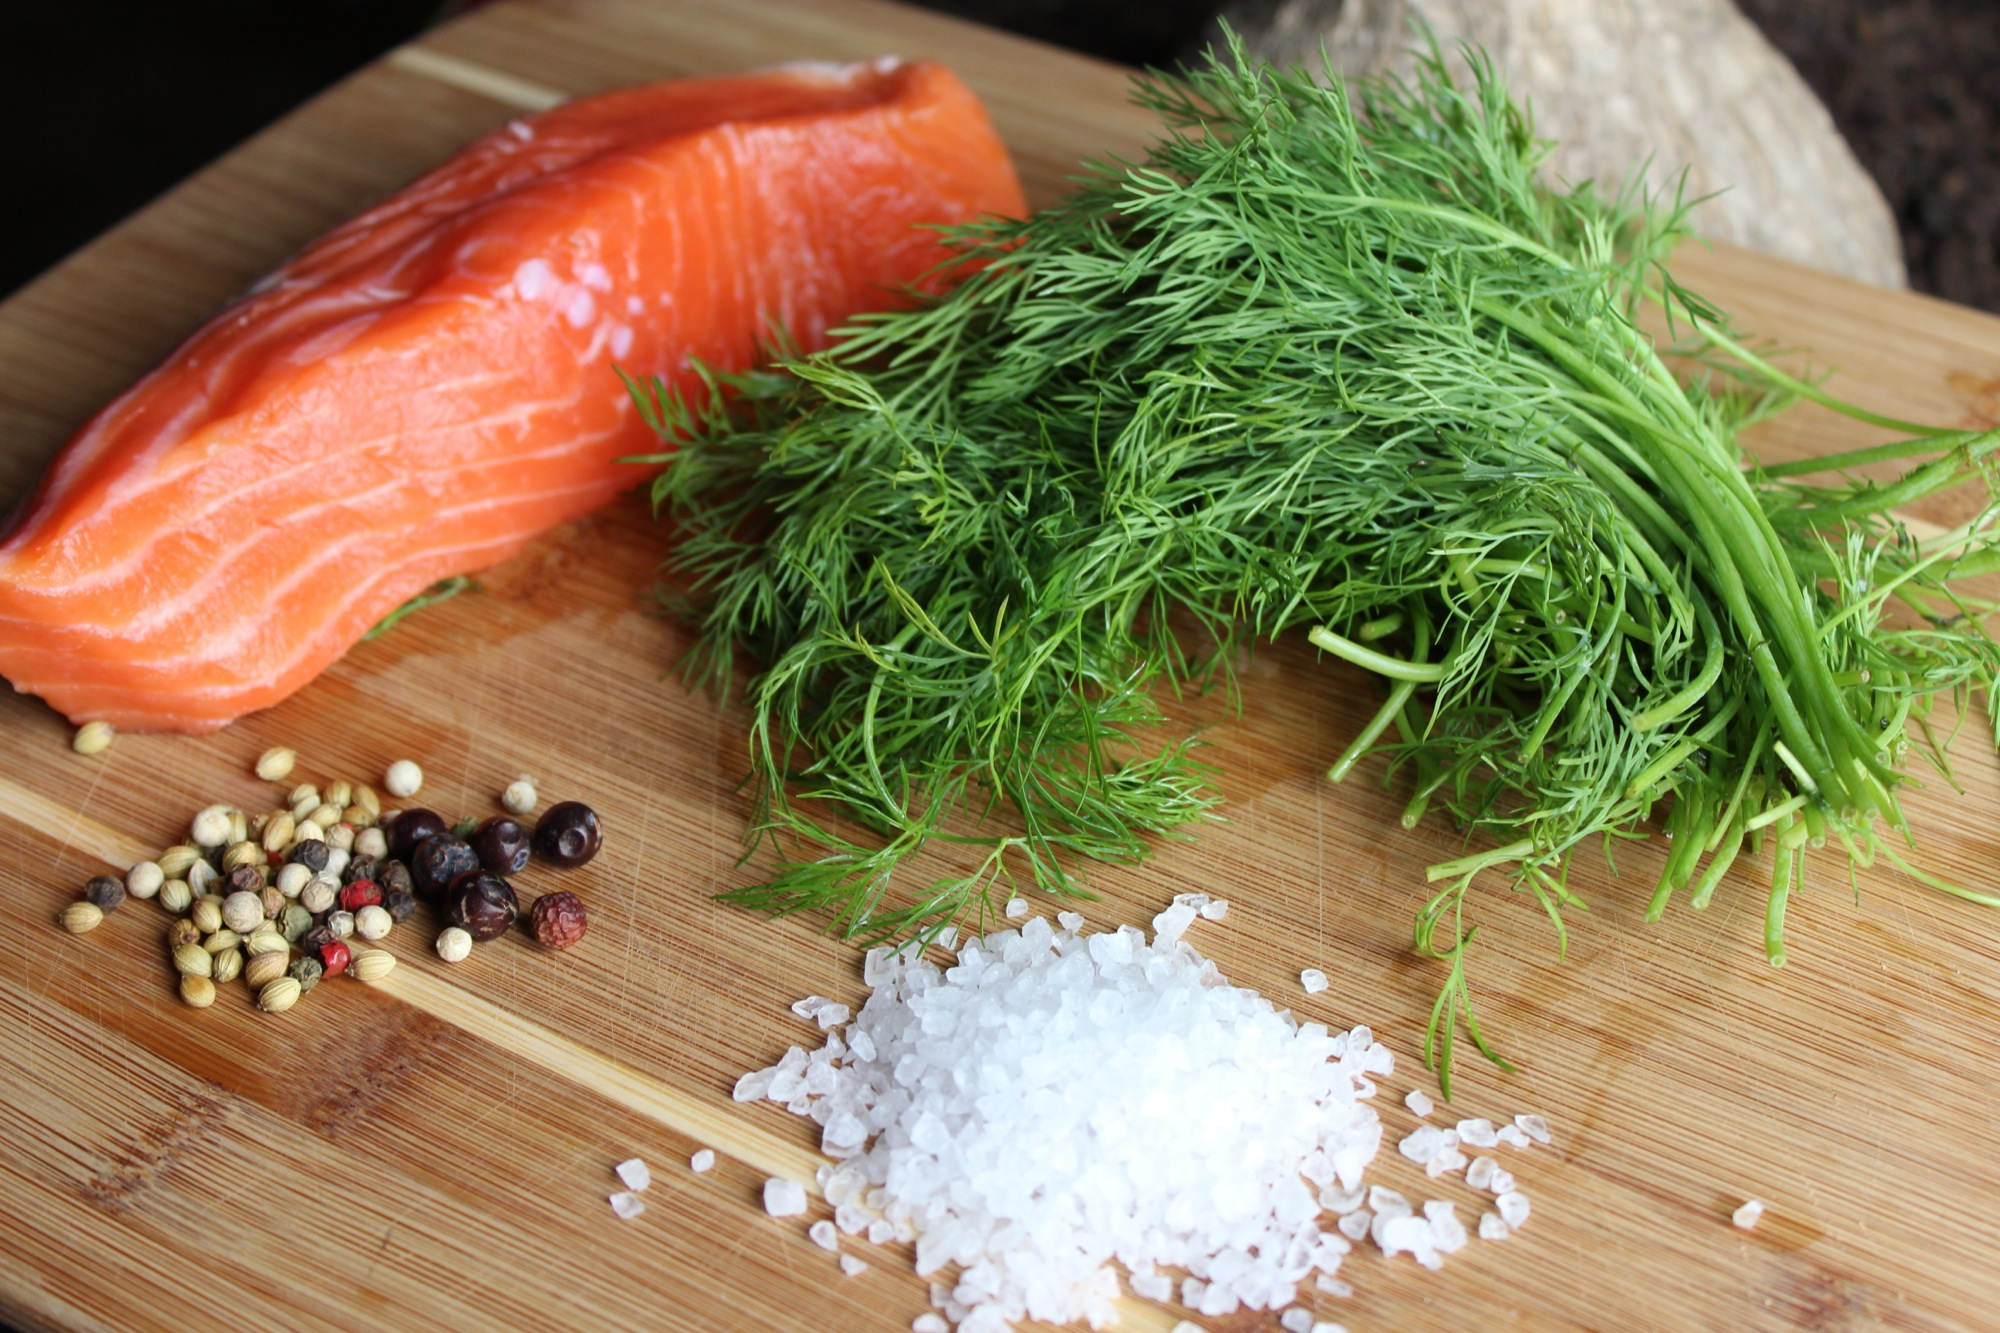 Classic flavorings for gravlax. This recipe uses pink peppercorn, but you can also use white, black or a mix, as you see here with or without other spices such as juniper, fennel, and caraway.